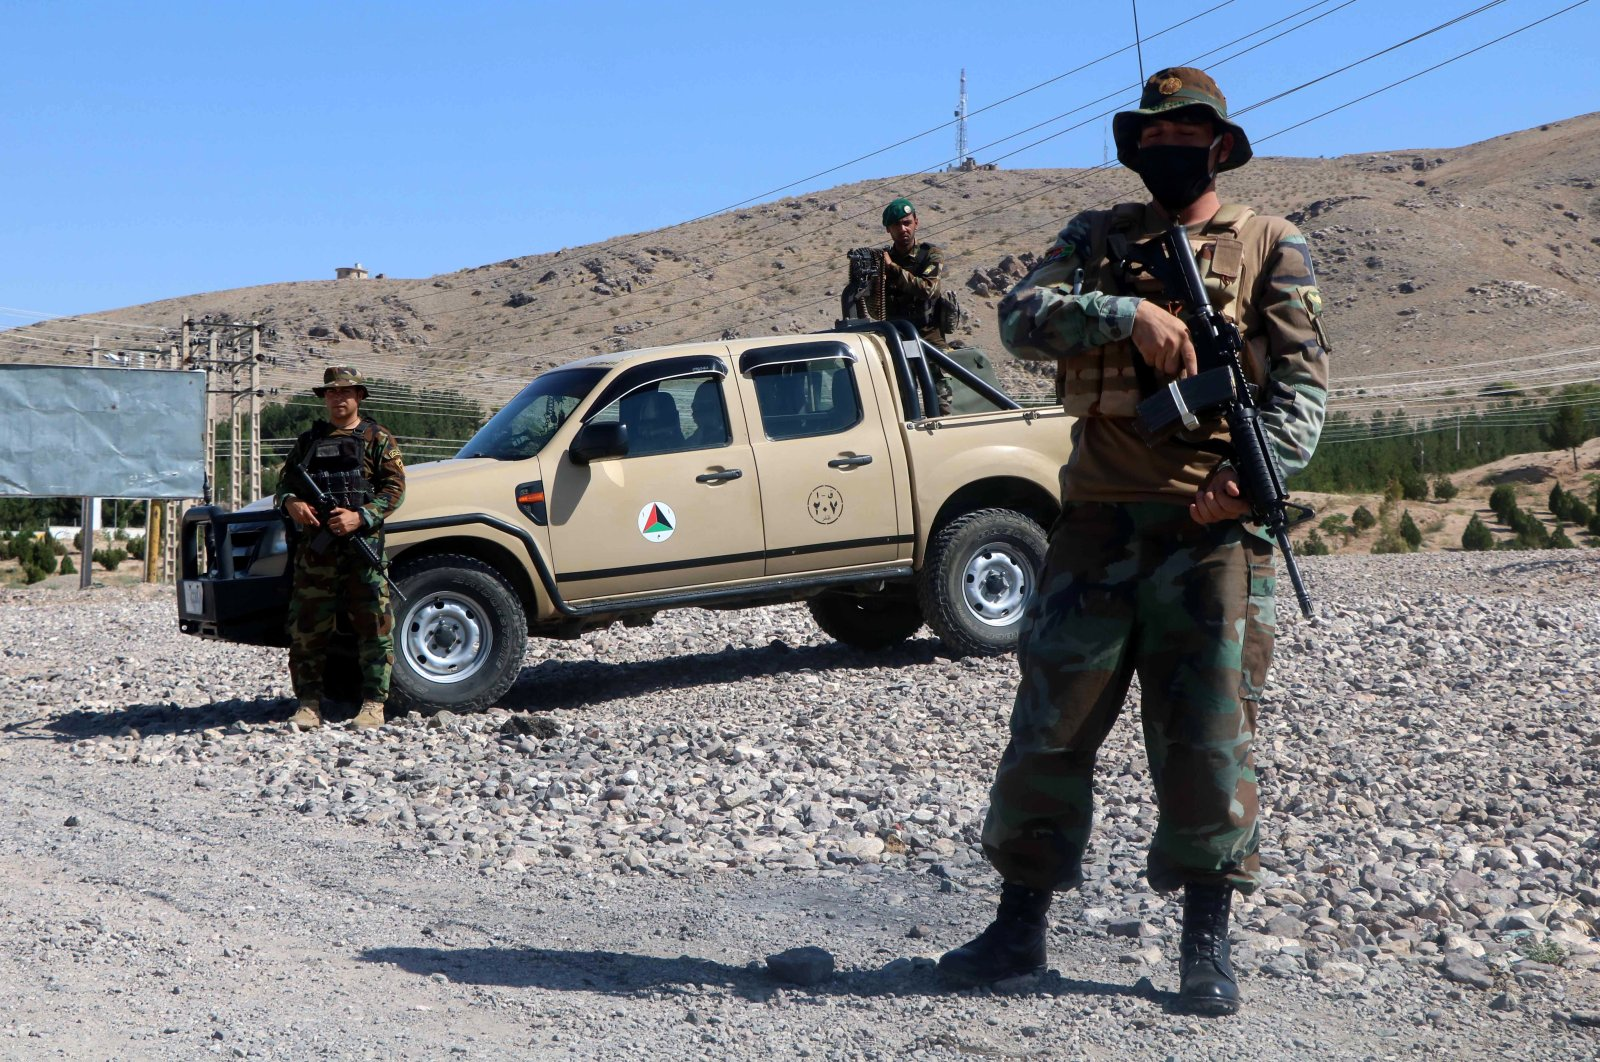 Afghan National Army (ANA) soldiers stand guard on a roadside checkpoint in Herat, Afghanistan, July 3, 2021. (EPA Photo)